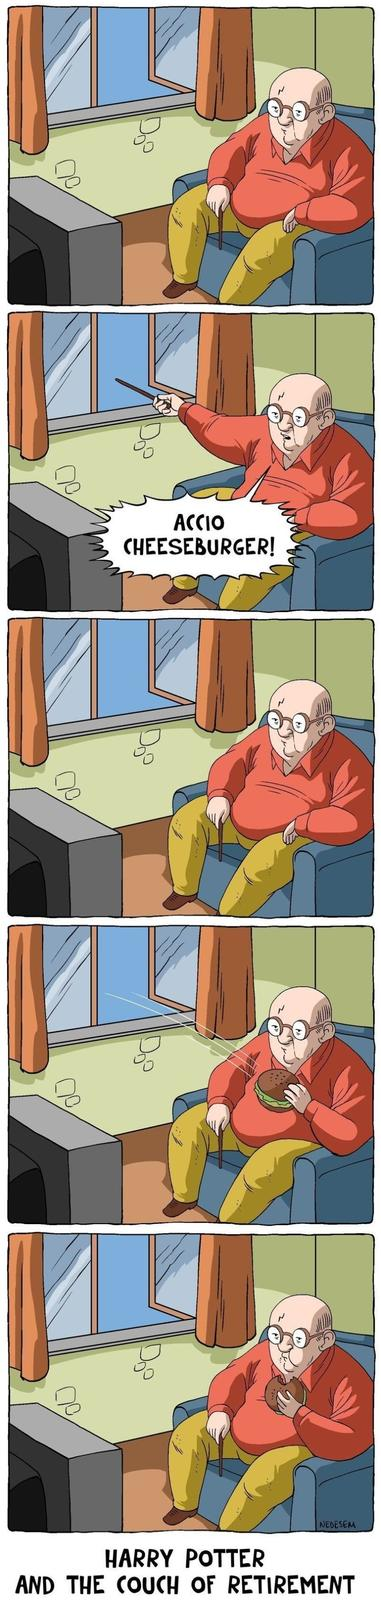 Harry Potter and the Couch of Retirement